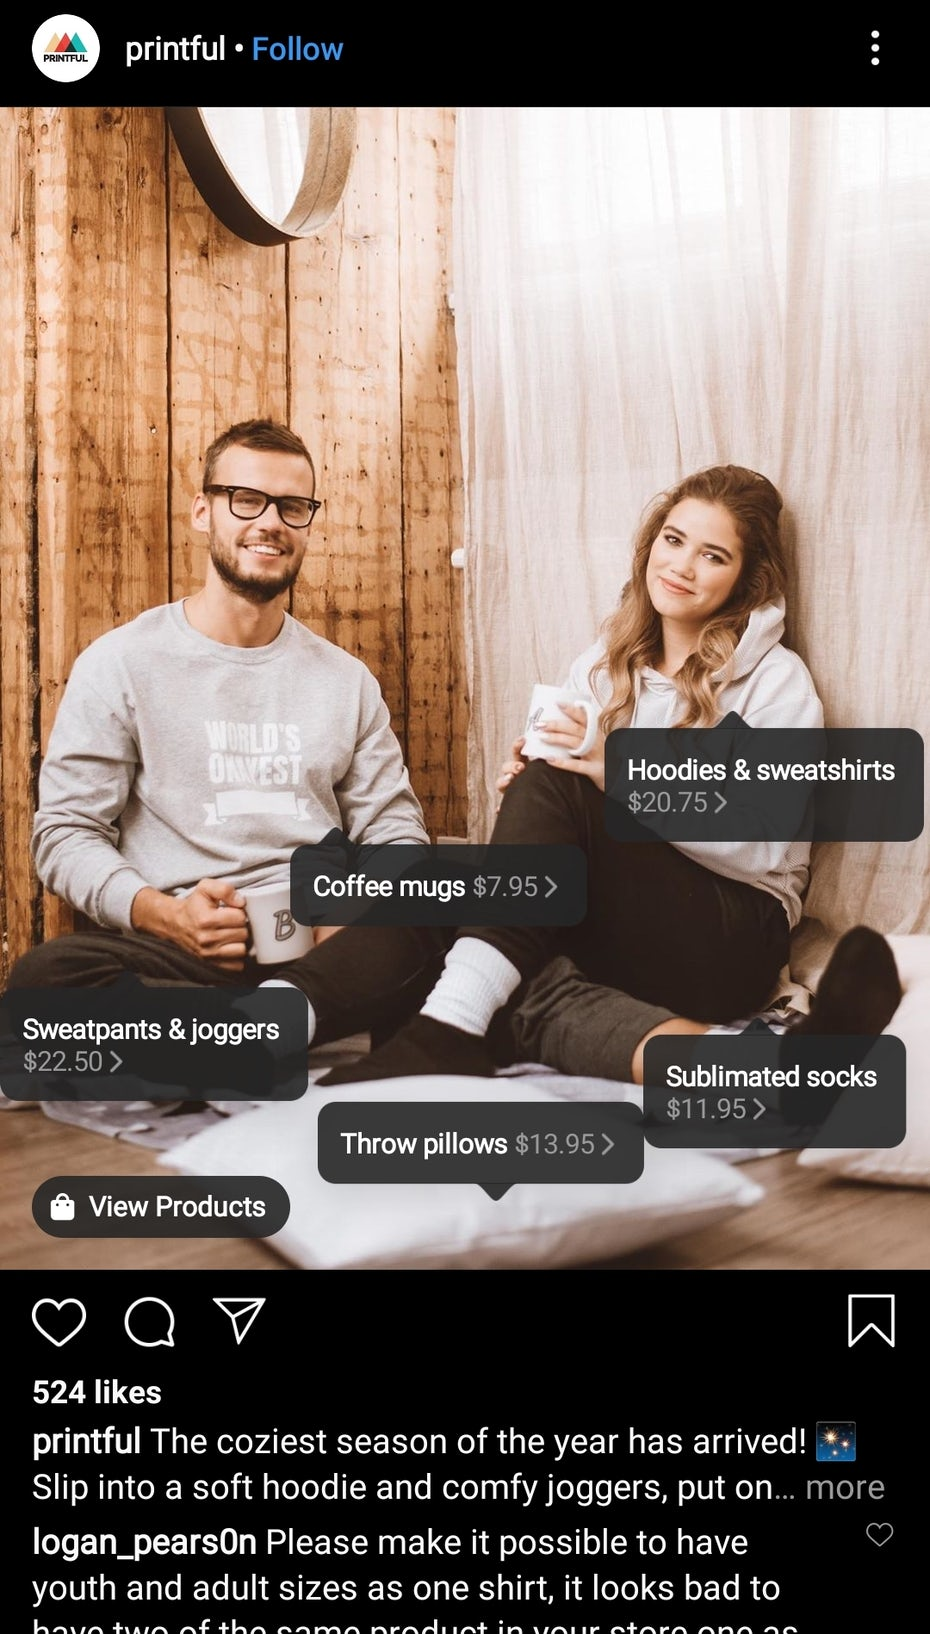 Example of an Instagram post with products to buy.